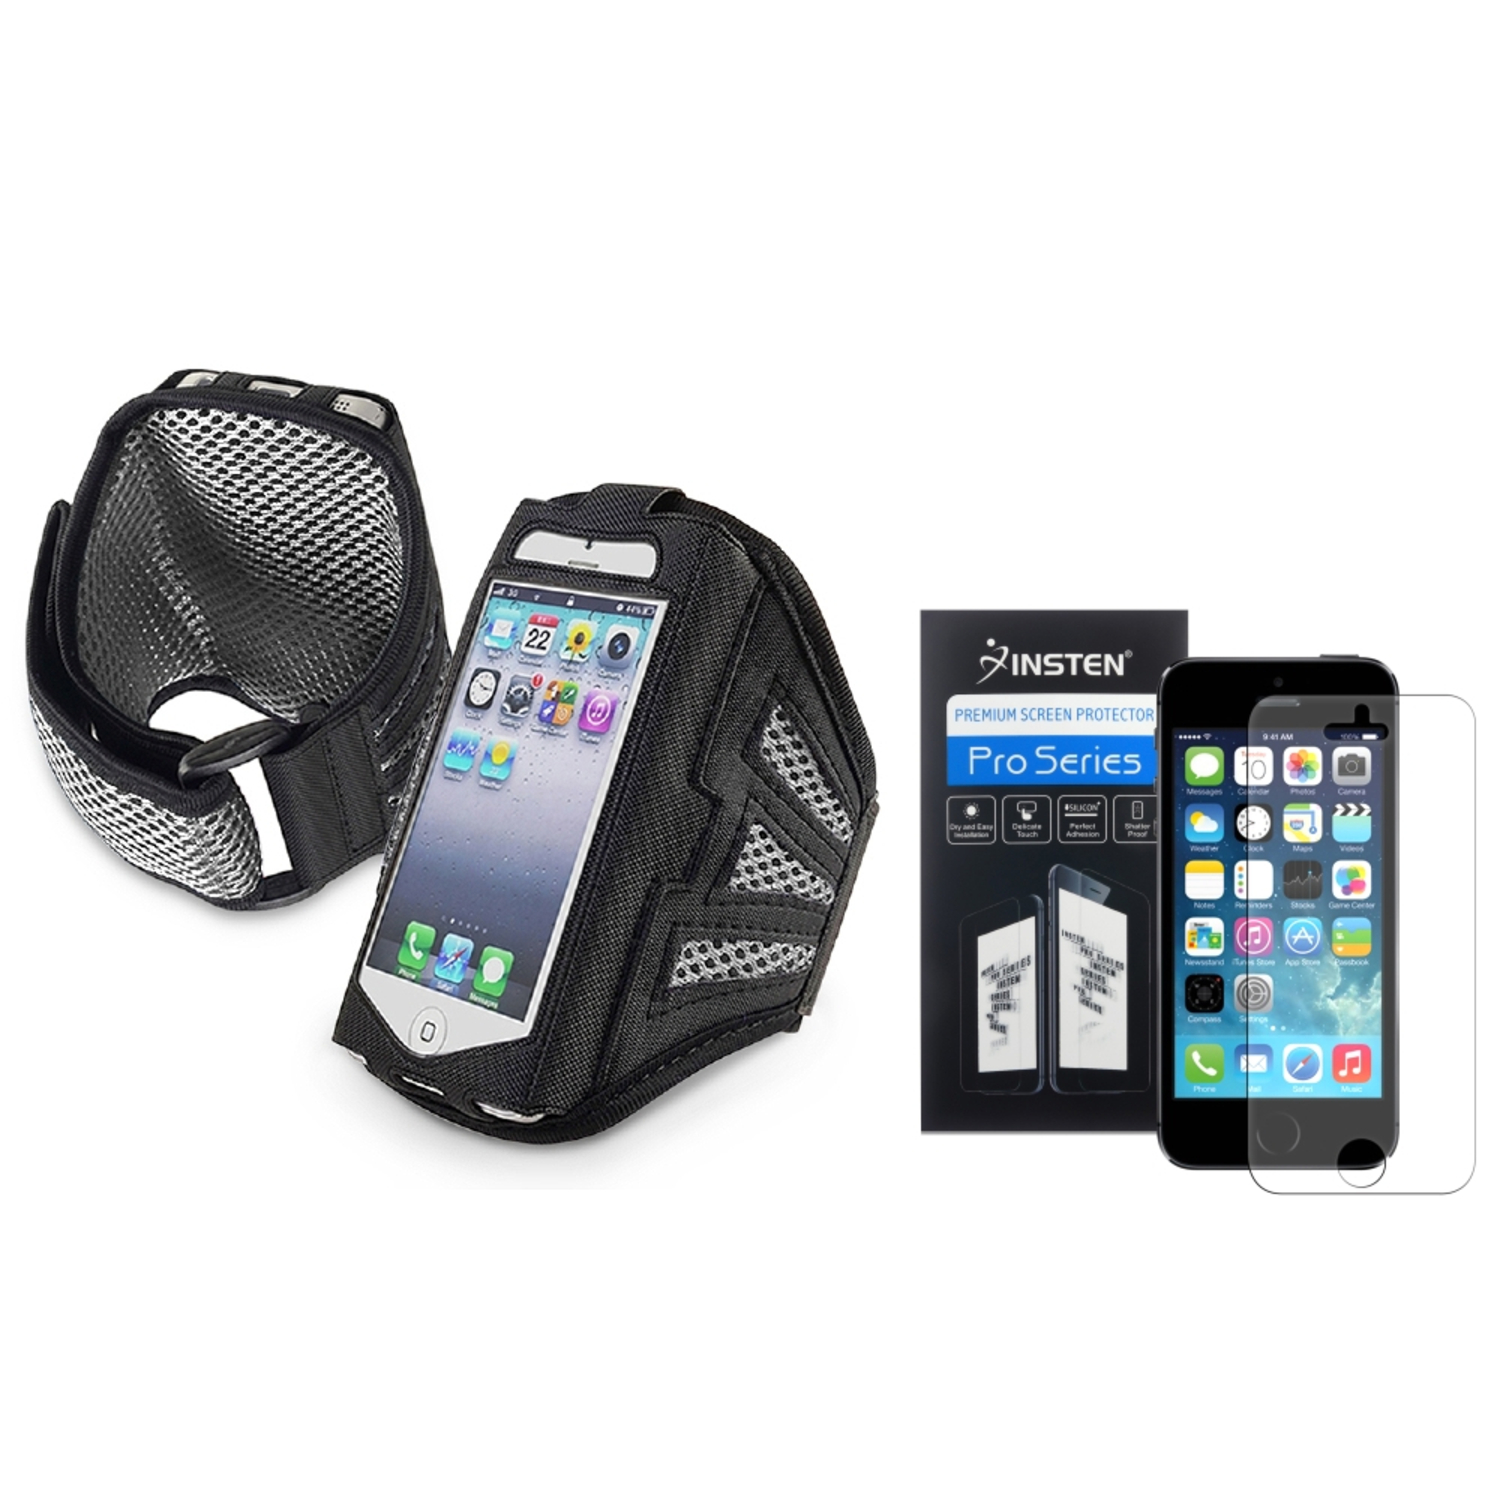 Insten Black/Silver Sports Running Armband Gym Case for iPhone 5 5G 5s + Anti-Glare Screen FIlm